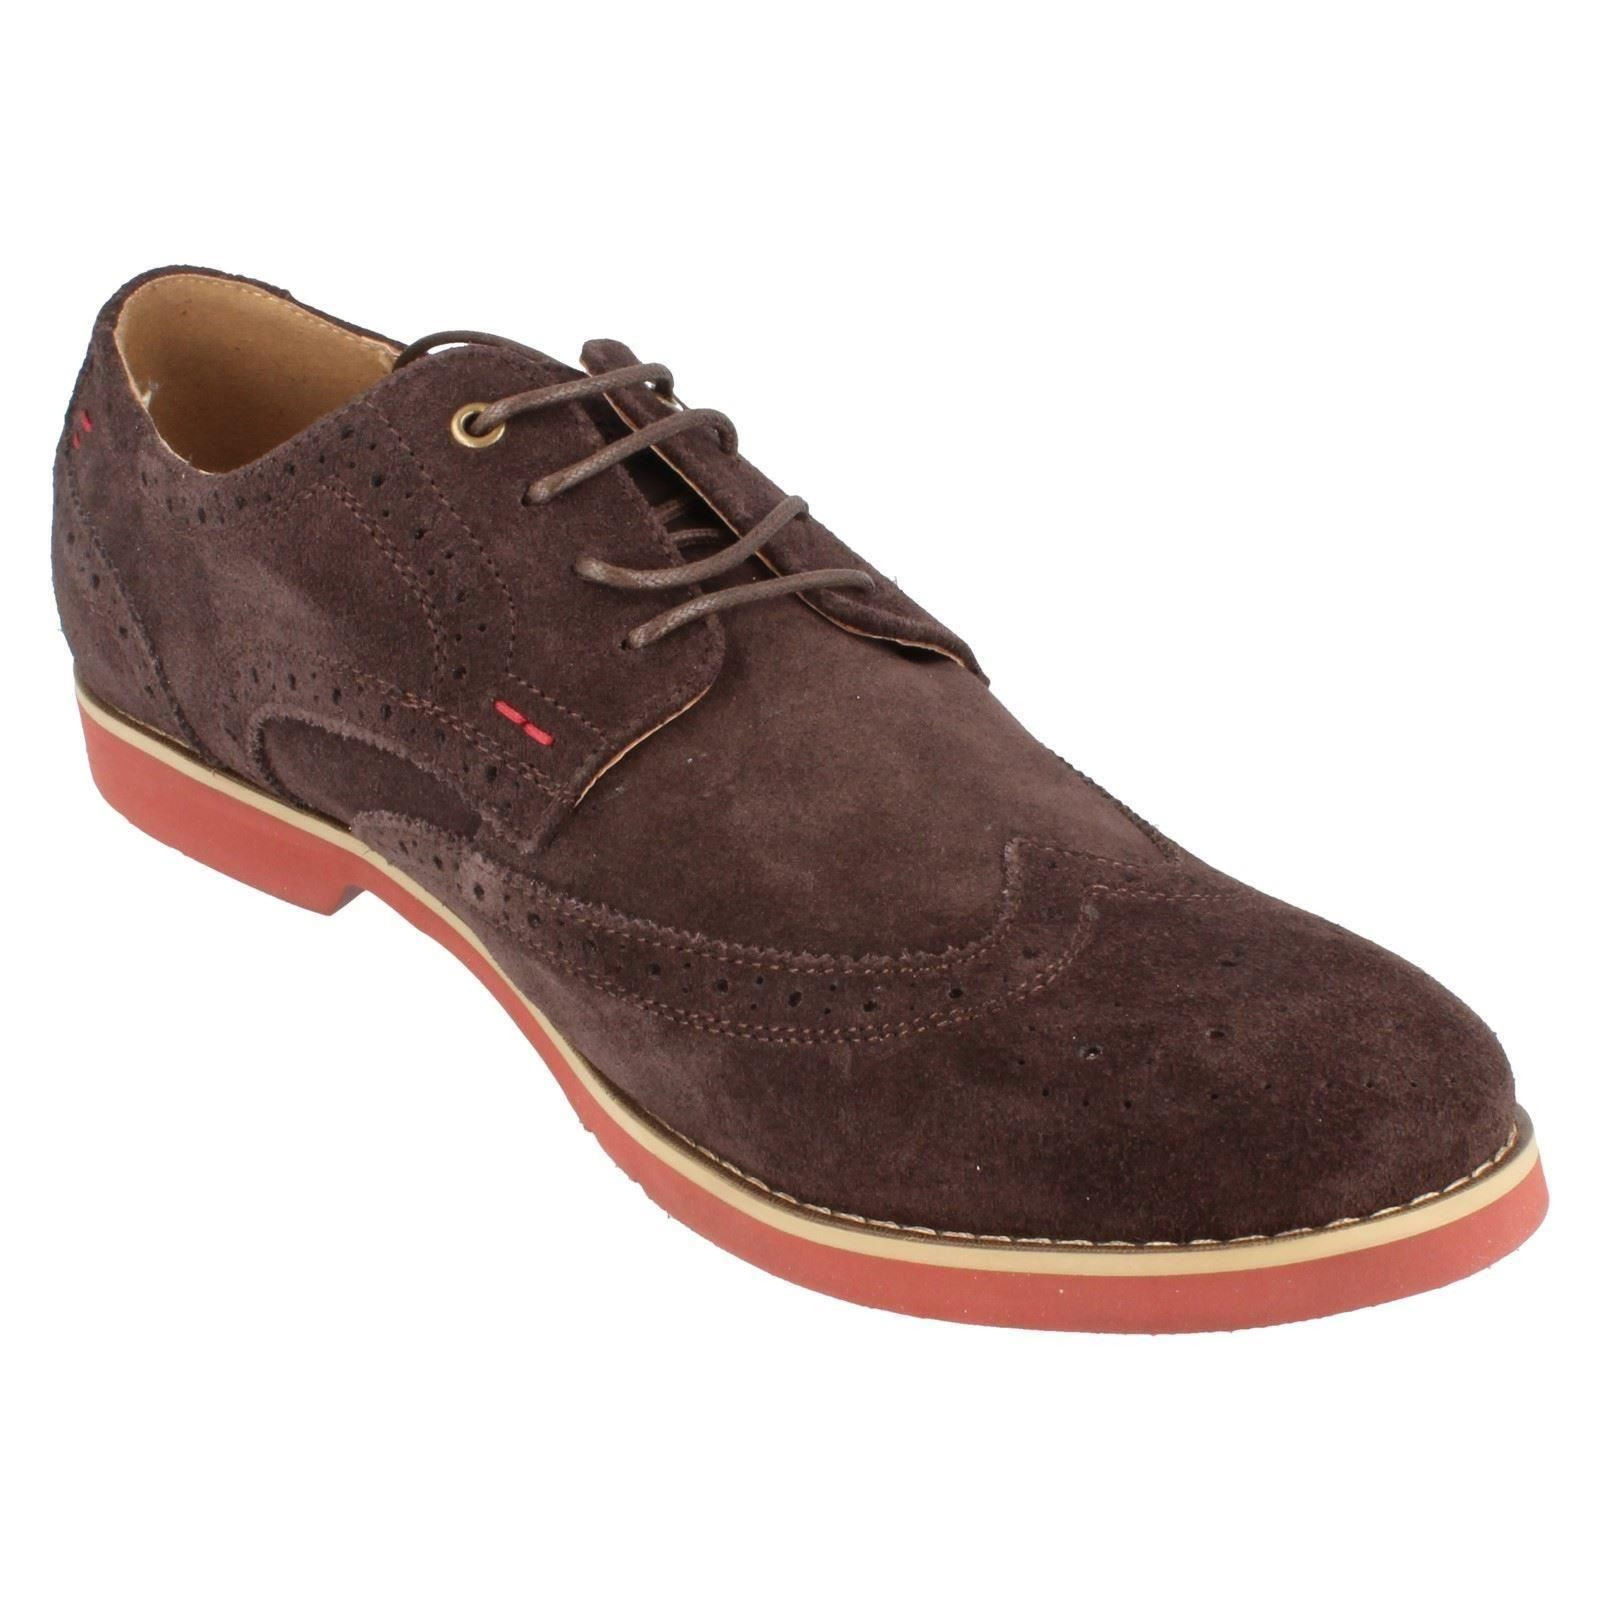 Mens Shoes Hush Puppies Lace Up Shoes Mens Fowler Ez Dress N 874a1b